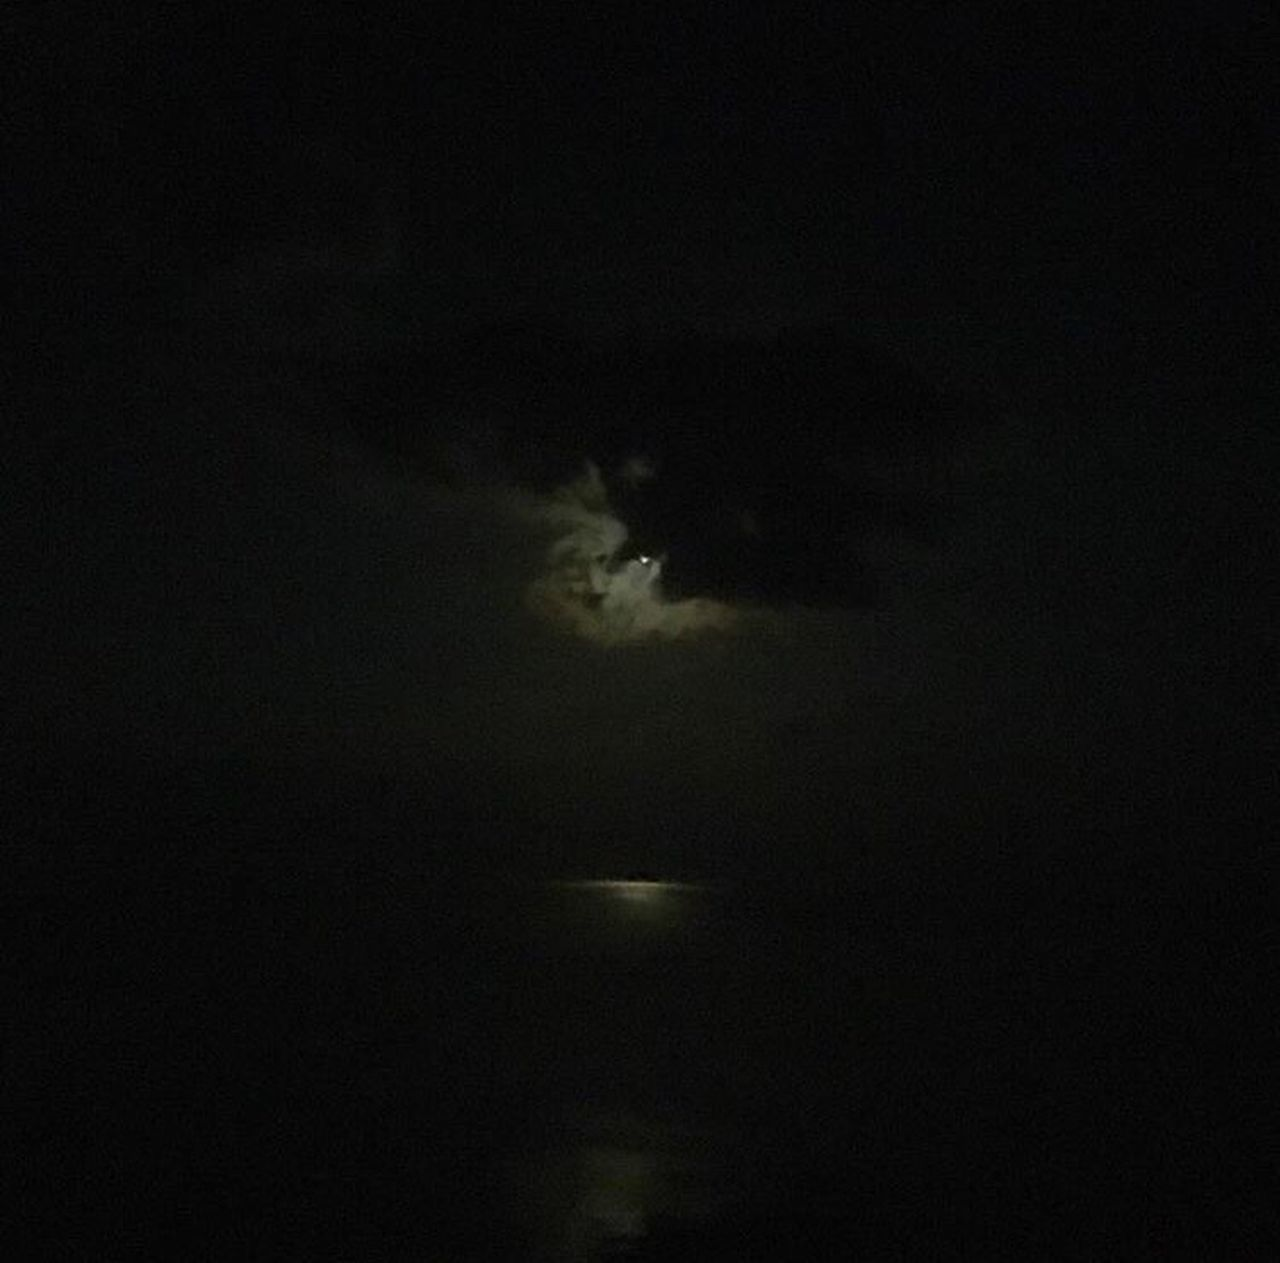 night, sky, no people, nature, scenics, beauty in nature, moon, astronomy, space exploration, outdoors, space